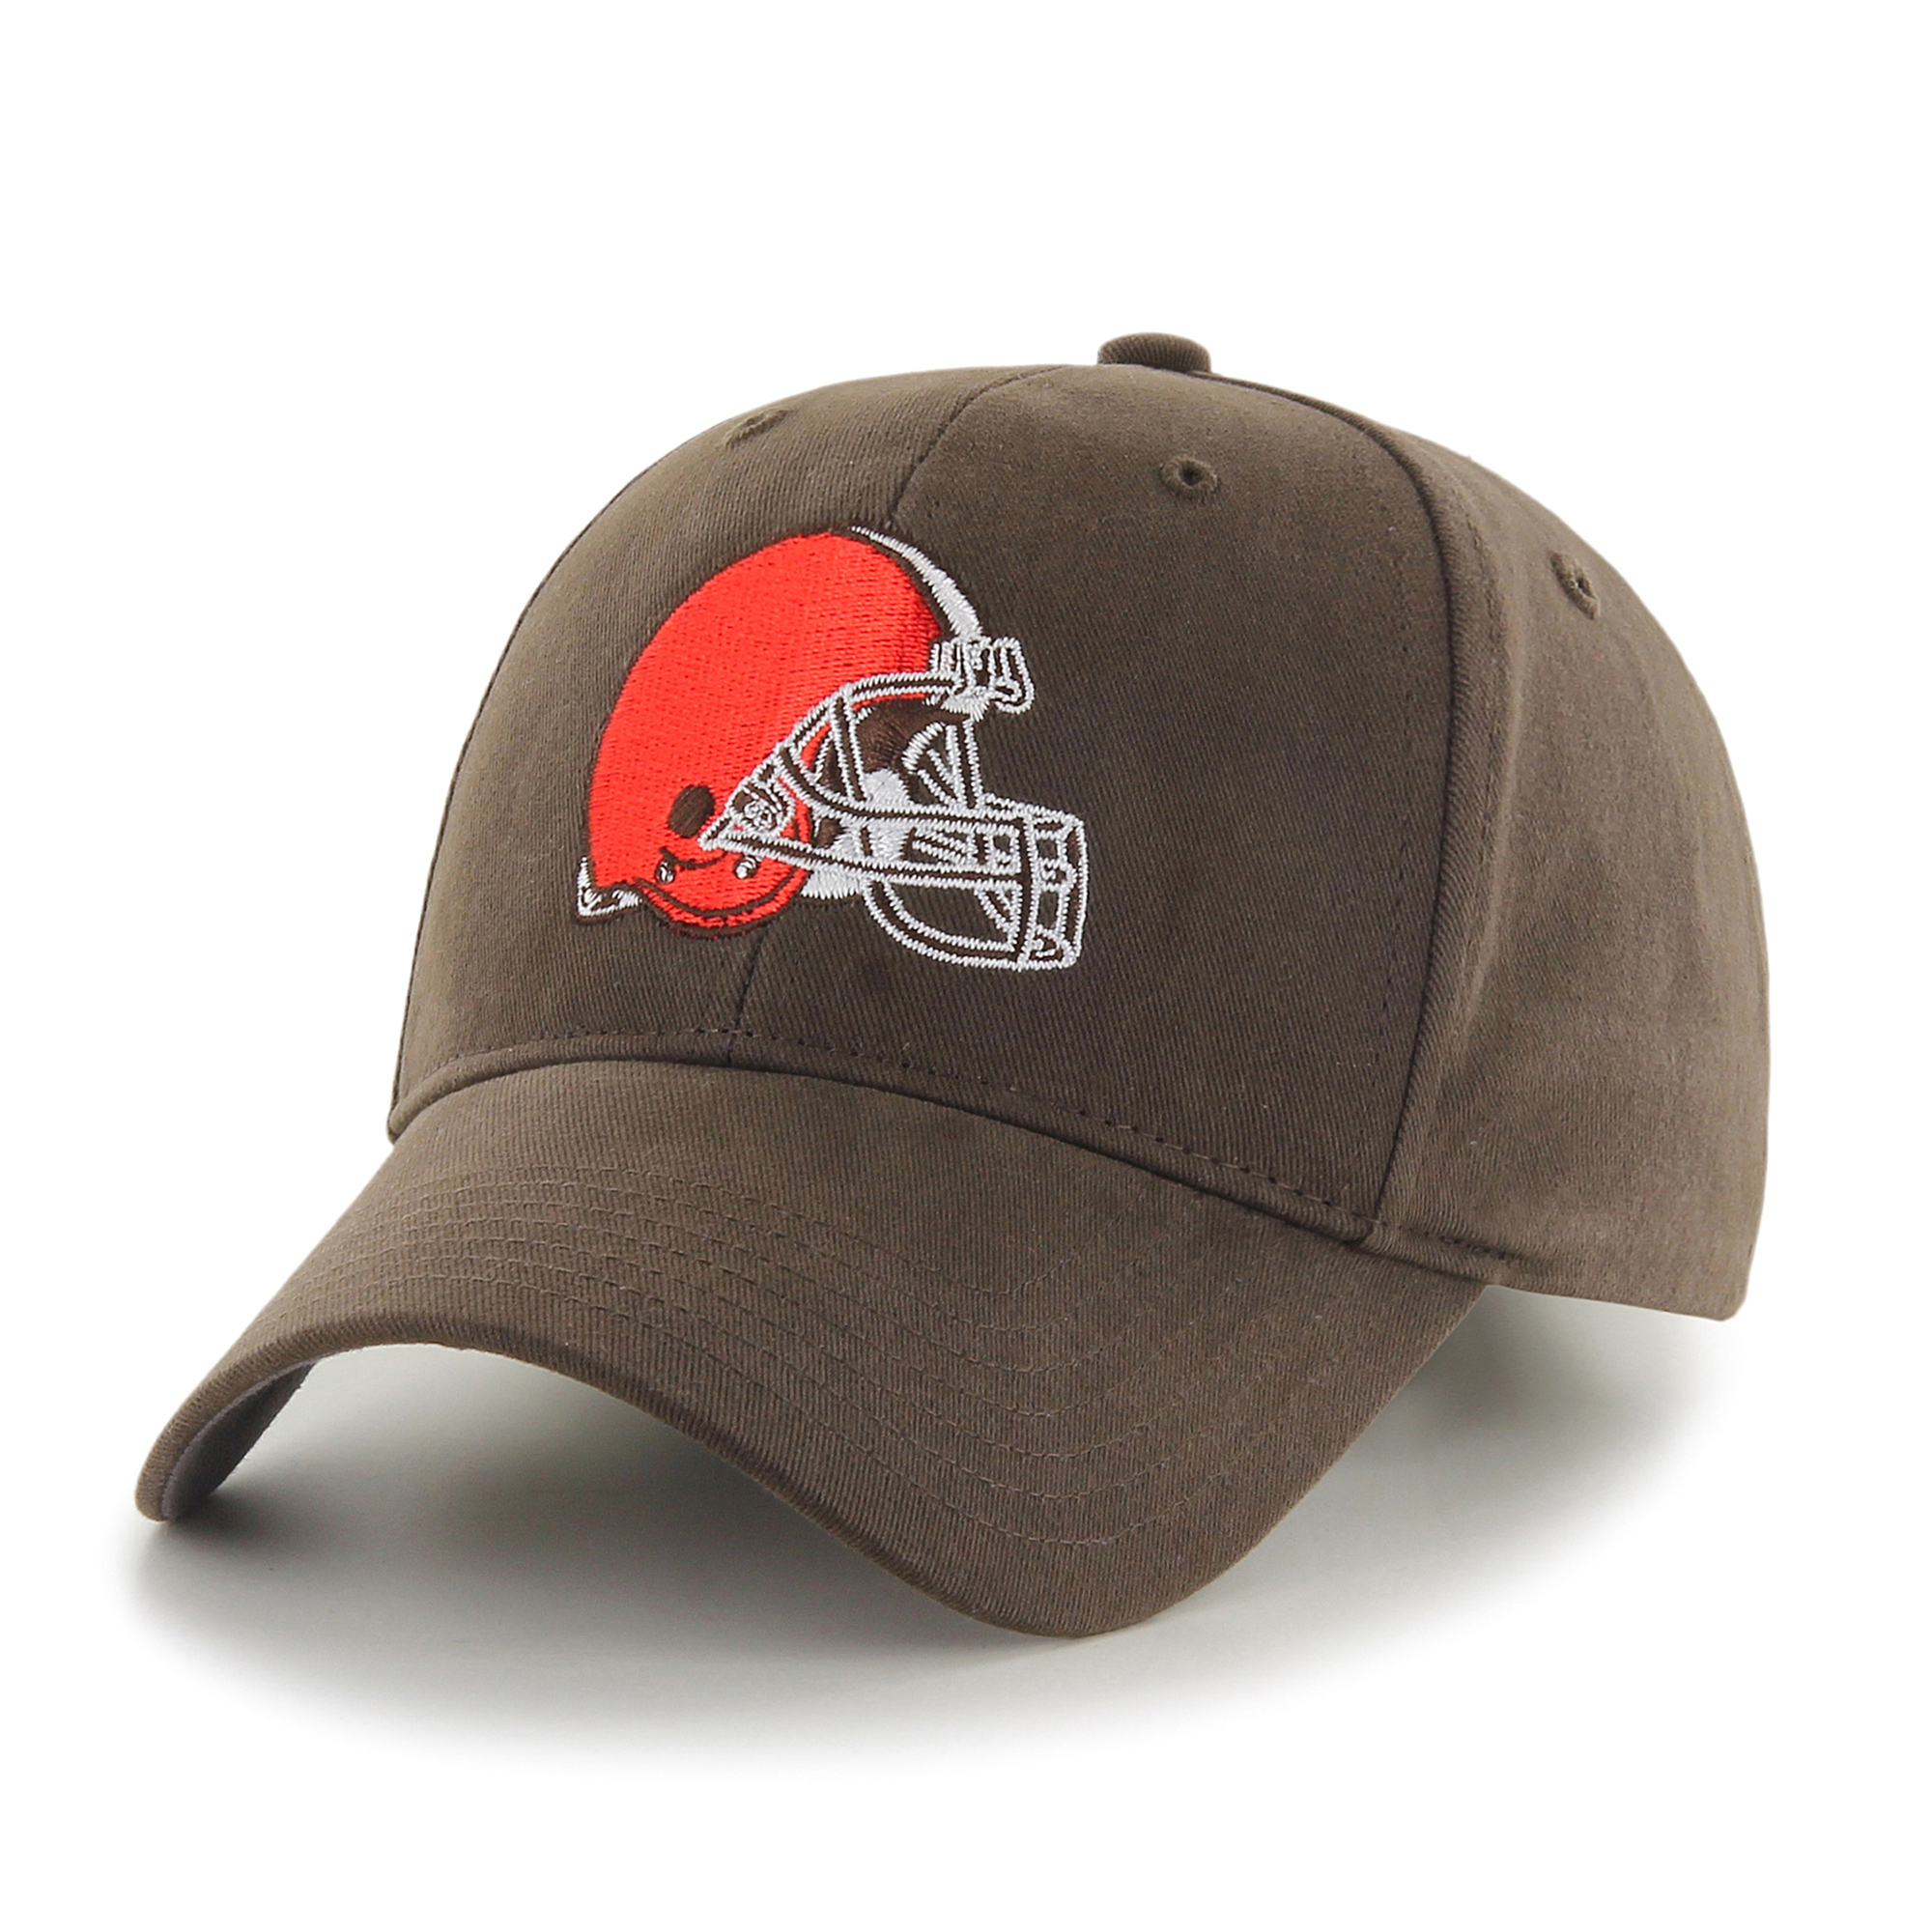 NFL Cleveland Browns Basic Adjustable Cap/Hat by Fan Favorite